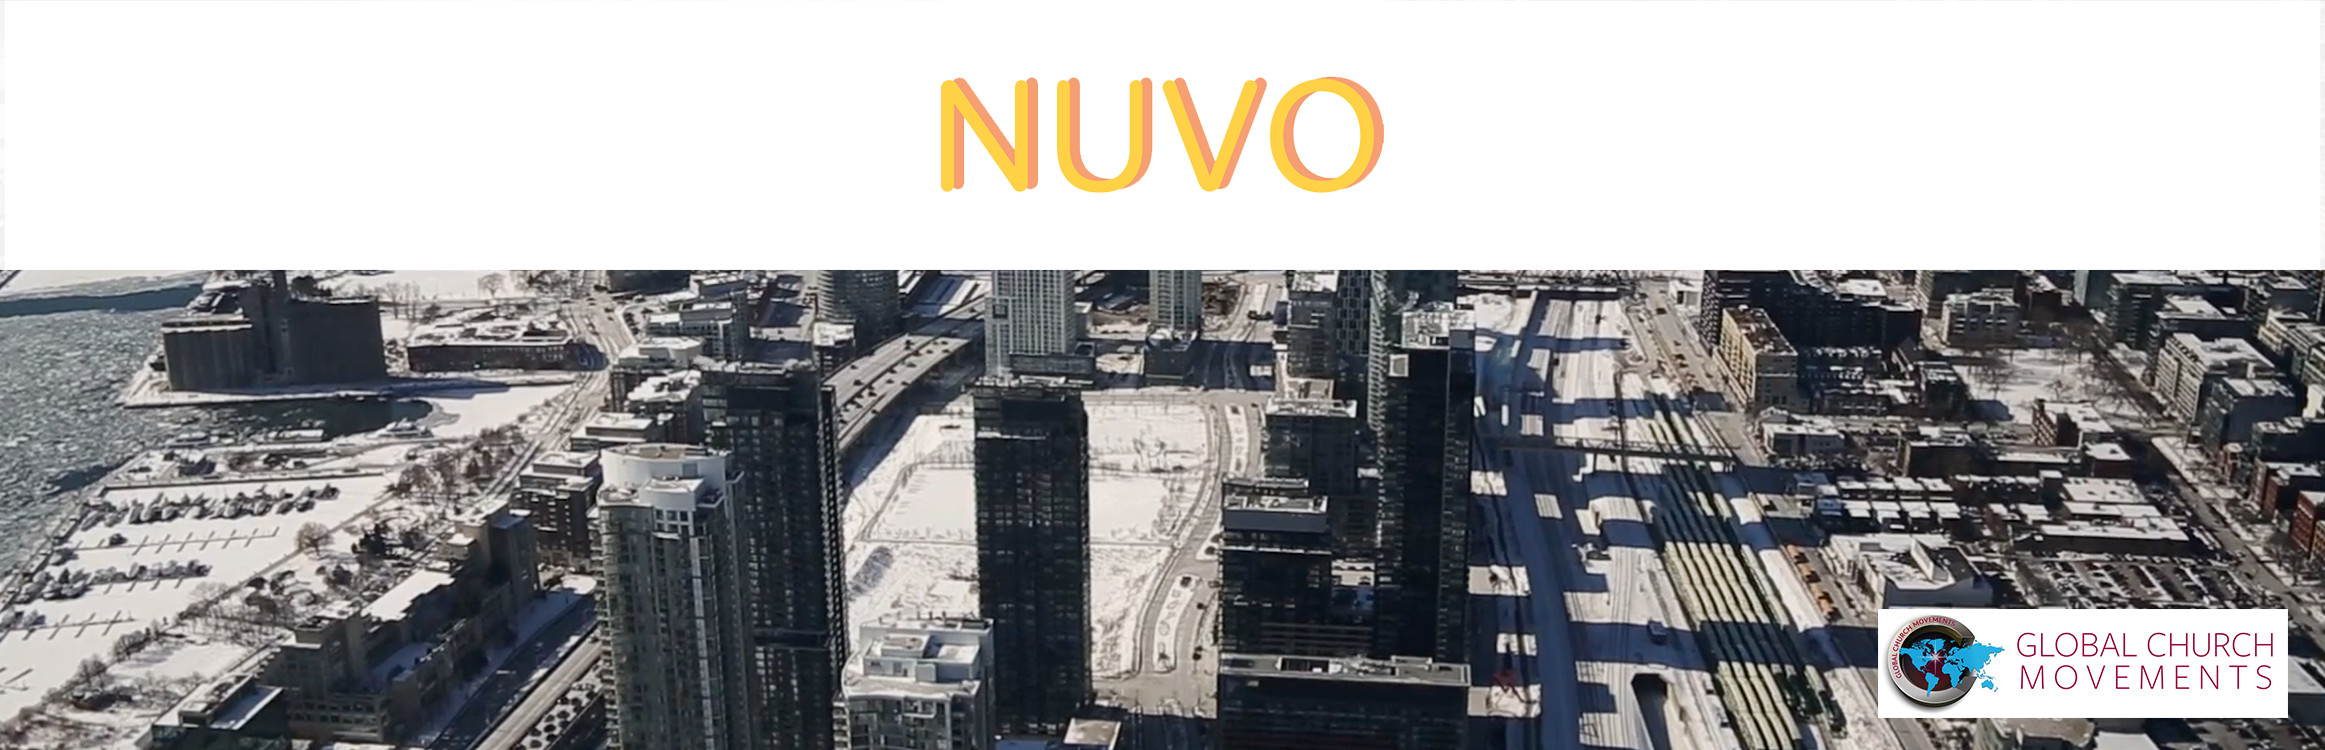 NUVO_v2.png